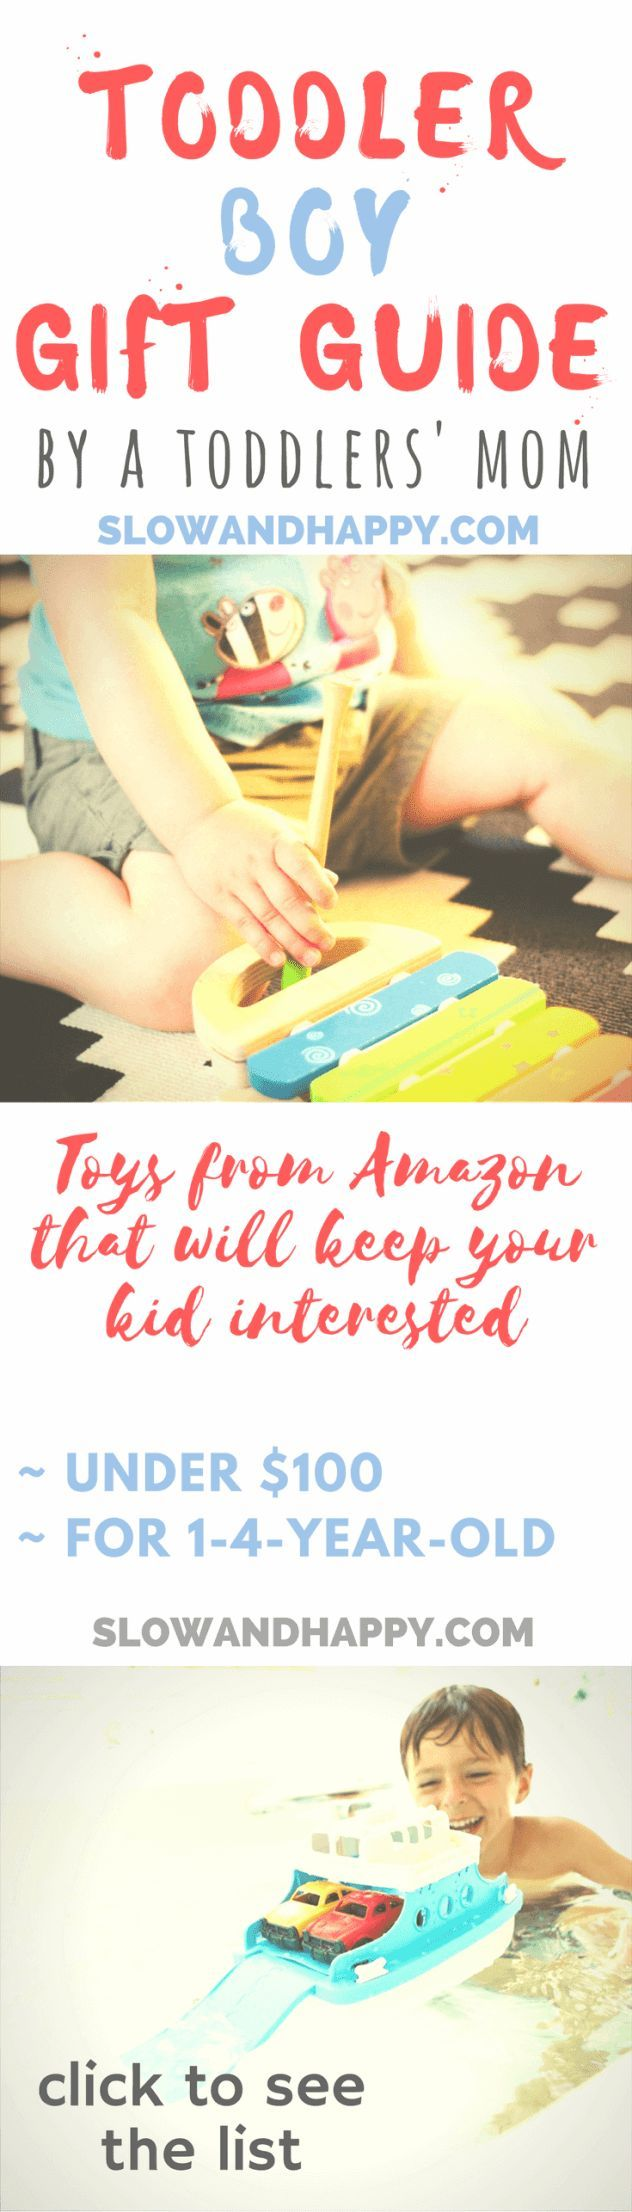 Toddler boy gift guide 2017 - toys from amazon under $100. For 1-4-year-old boys. Choice by a current toddlers' mom. Gifts for boys Chrismas 2017 | gifts for toddlers Christmas | gift guide for kids | gifts for toddler boys #giftguide #giftguideforkids #giftguideforboys #giftsforkids #giftsforboys #Deals #GIFTIDEA #giftideas Click to see the list + some good deals!